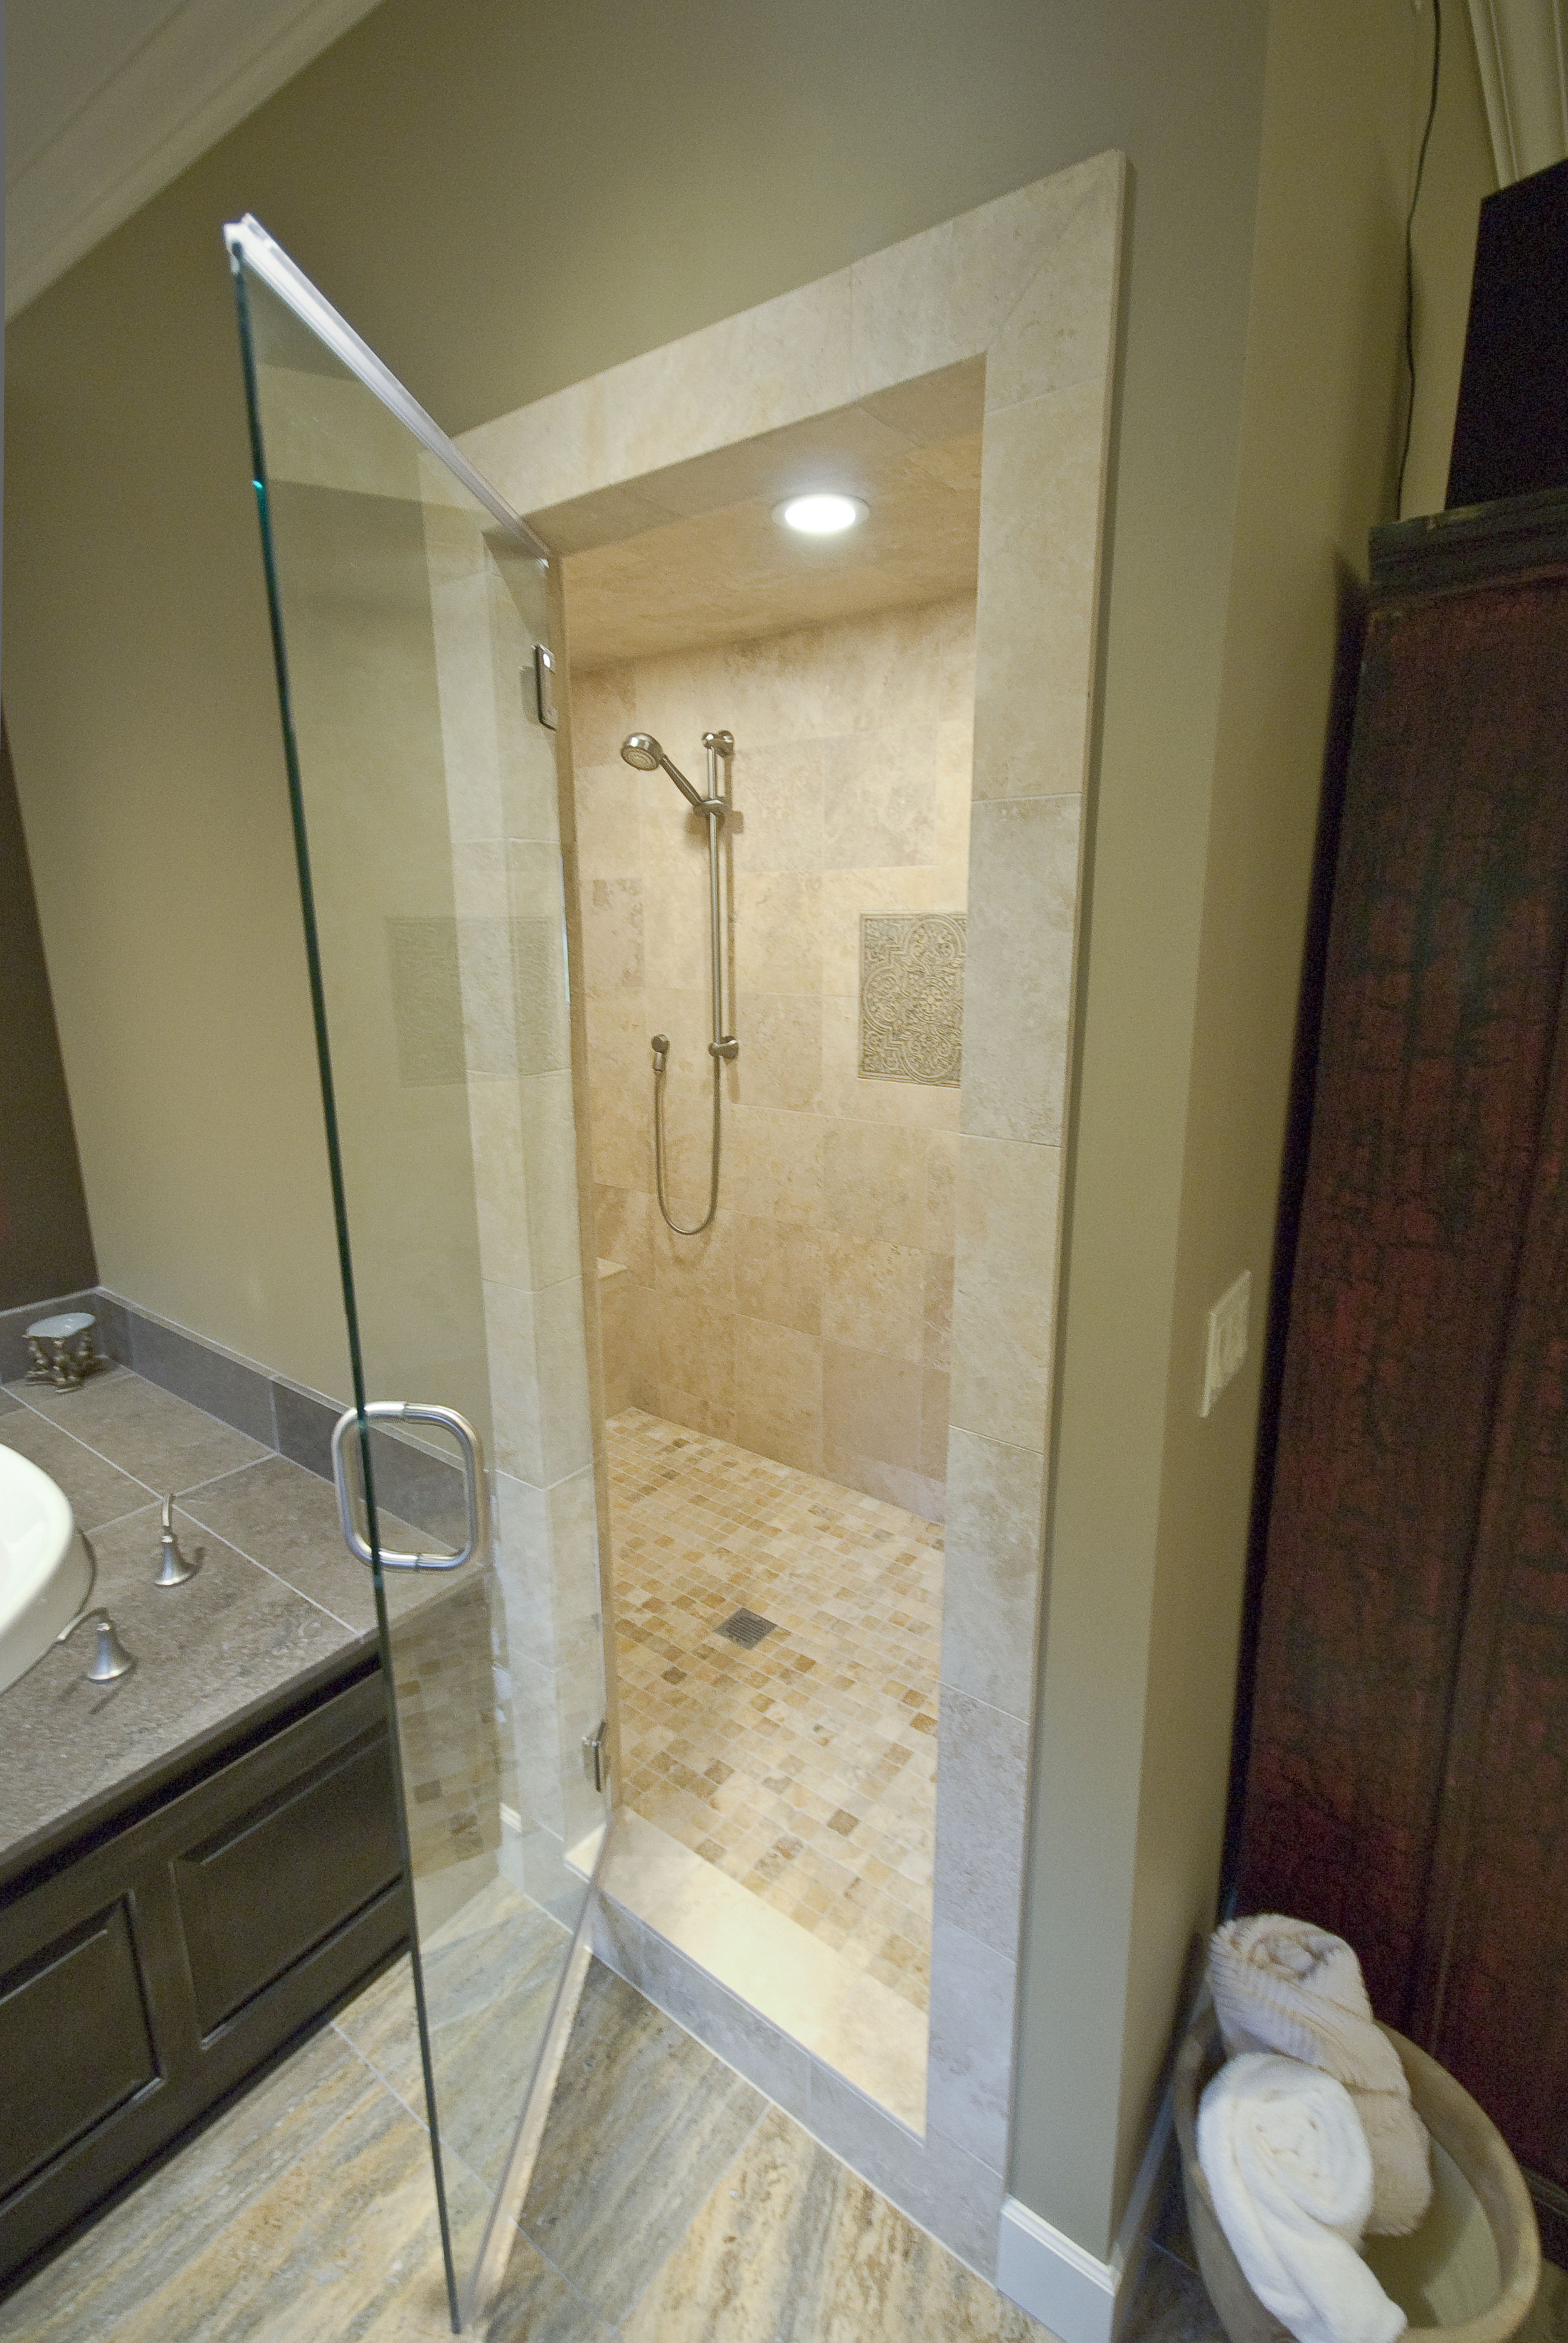 The steam shower was a must for him a sealed room with travertine tile floor to ceiling.  The tile is heated even in the shower and on the bench!